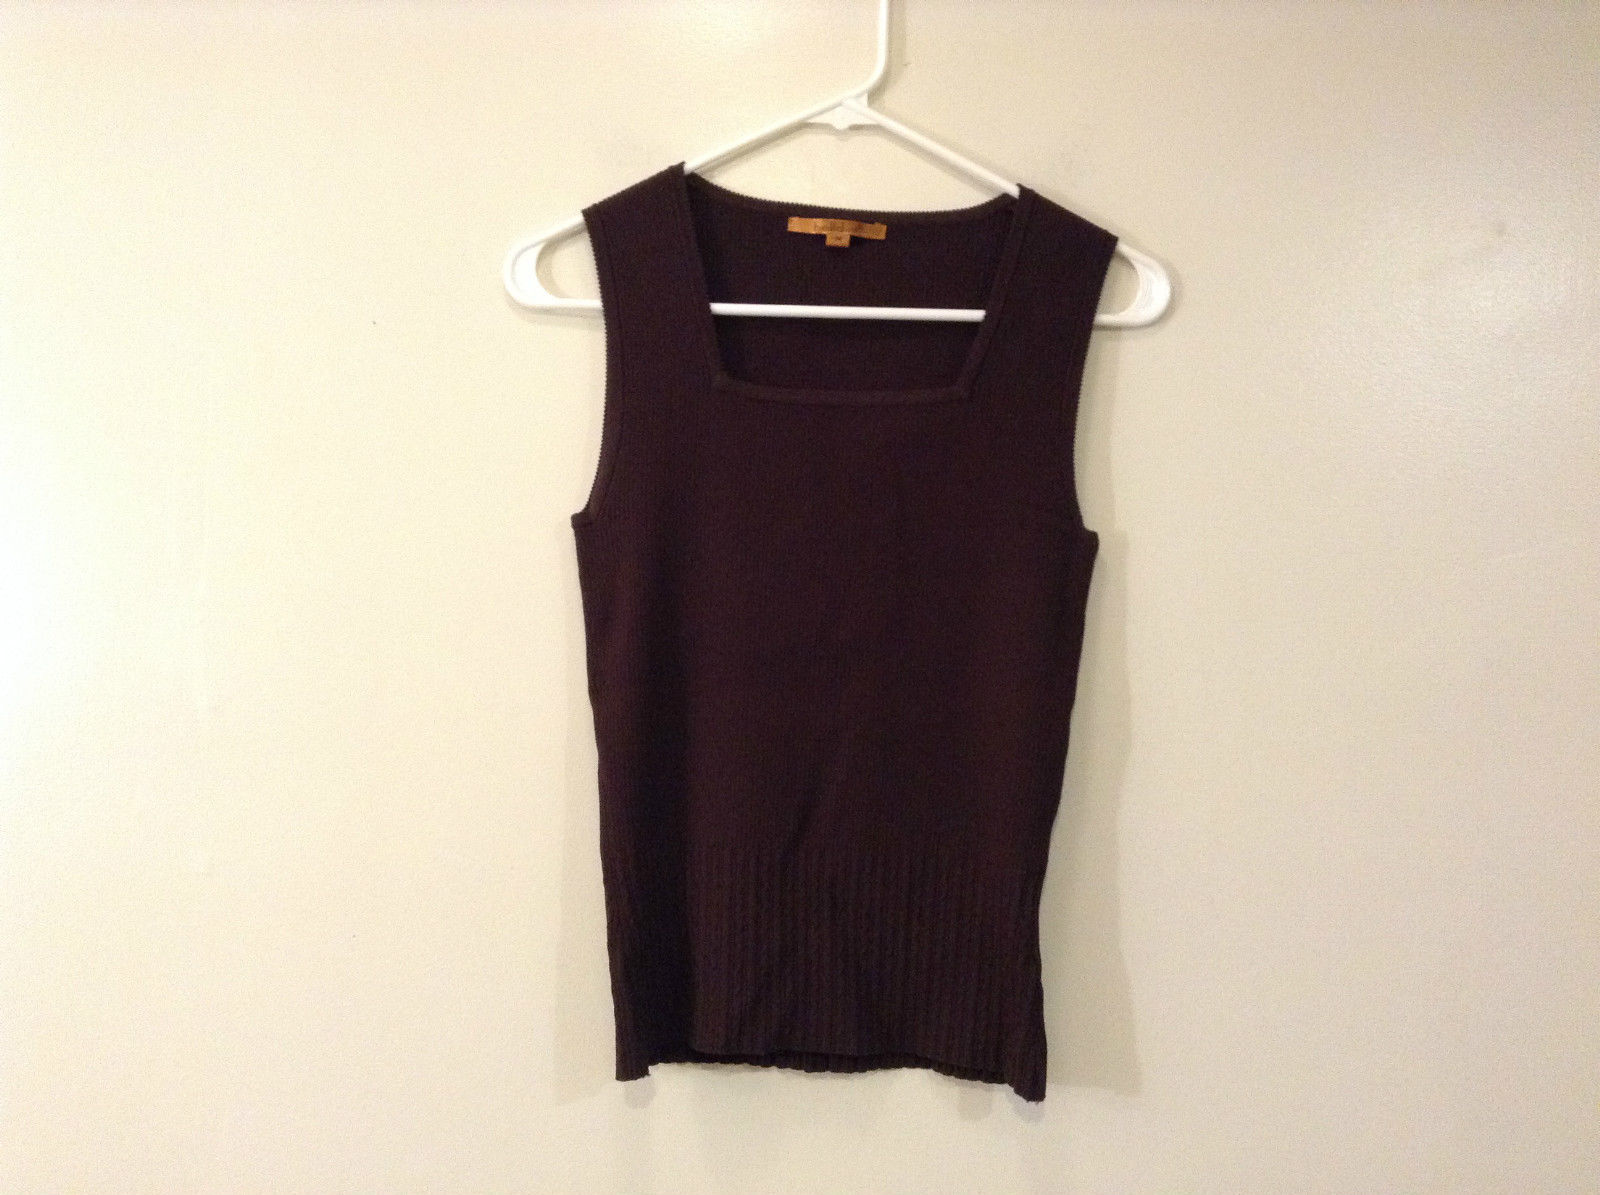 Belldini Brown Square Neck Sleeveless Top Size M Stretch Fabric